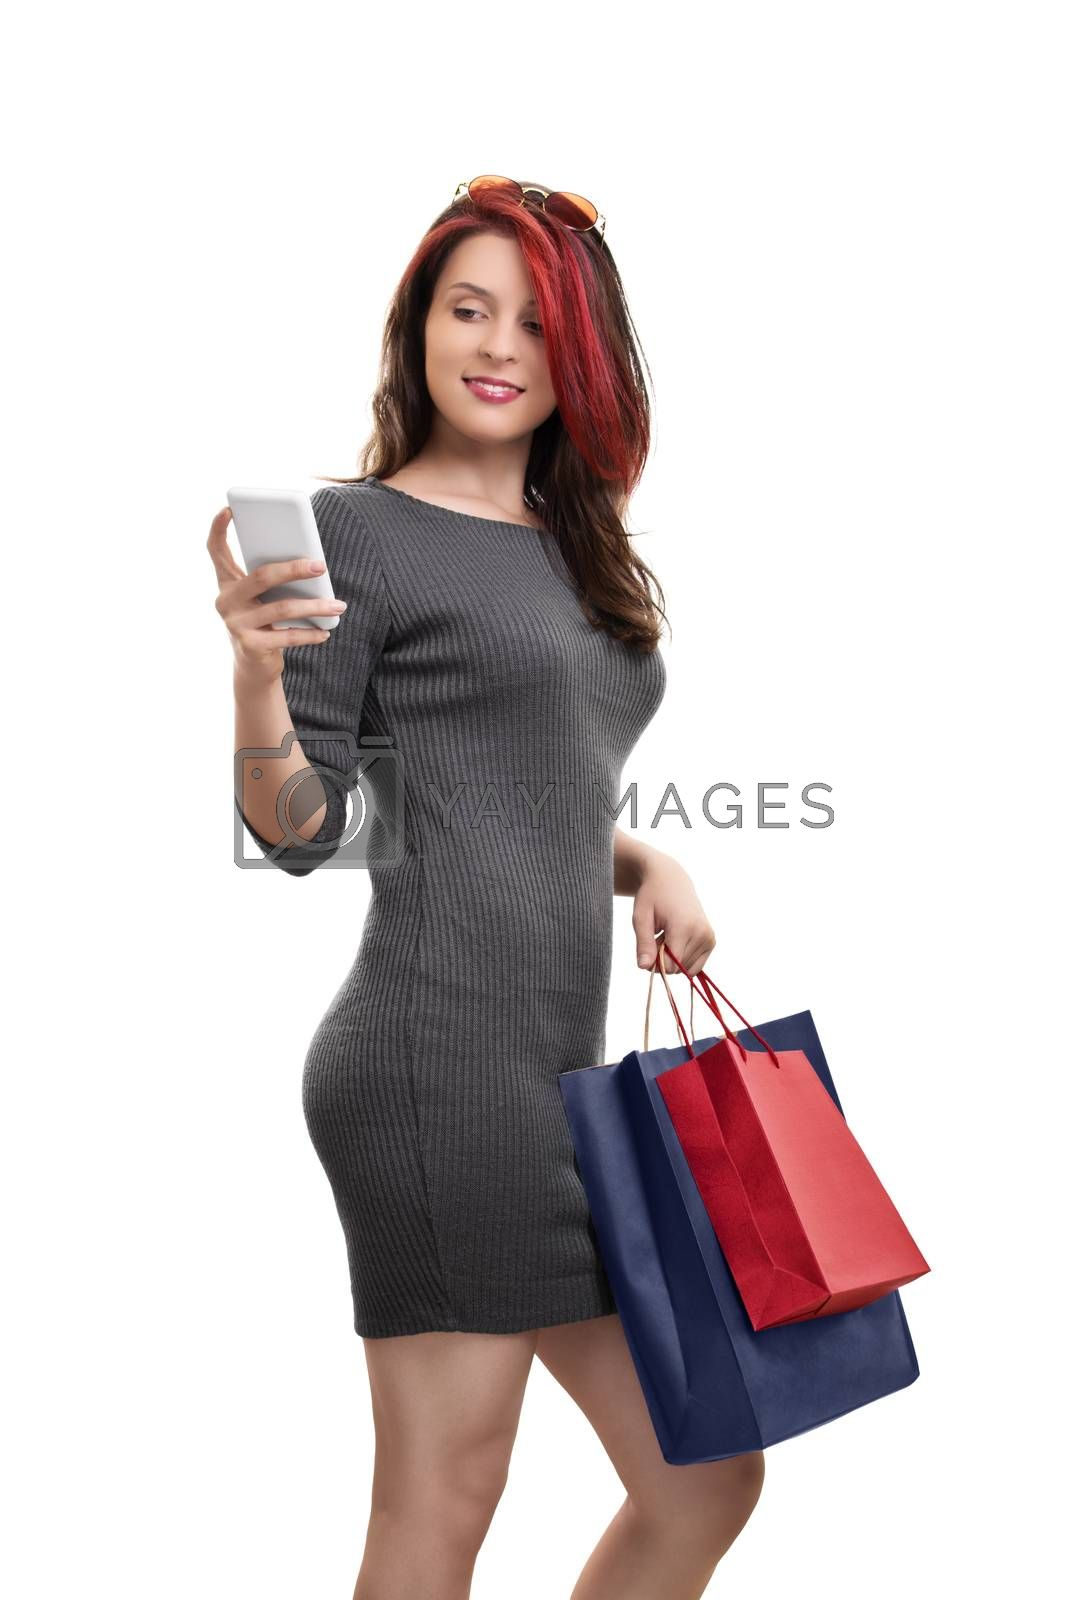 Shopping and social media go together by Mendelex